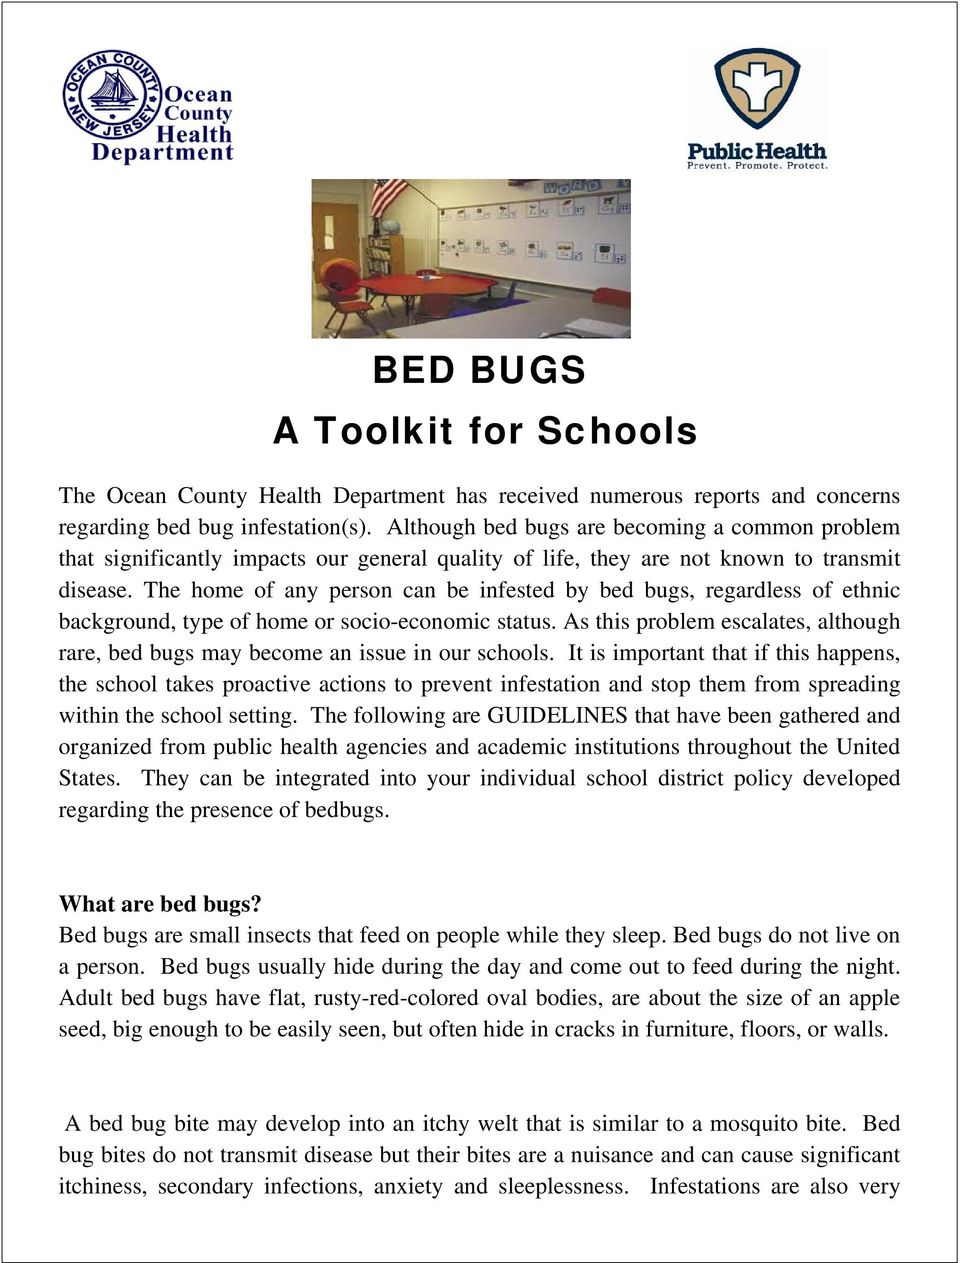 The home of any person can be infested by bed bugs, regardless of ethnic background, type of home or socio-economic status.